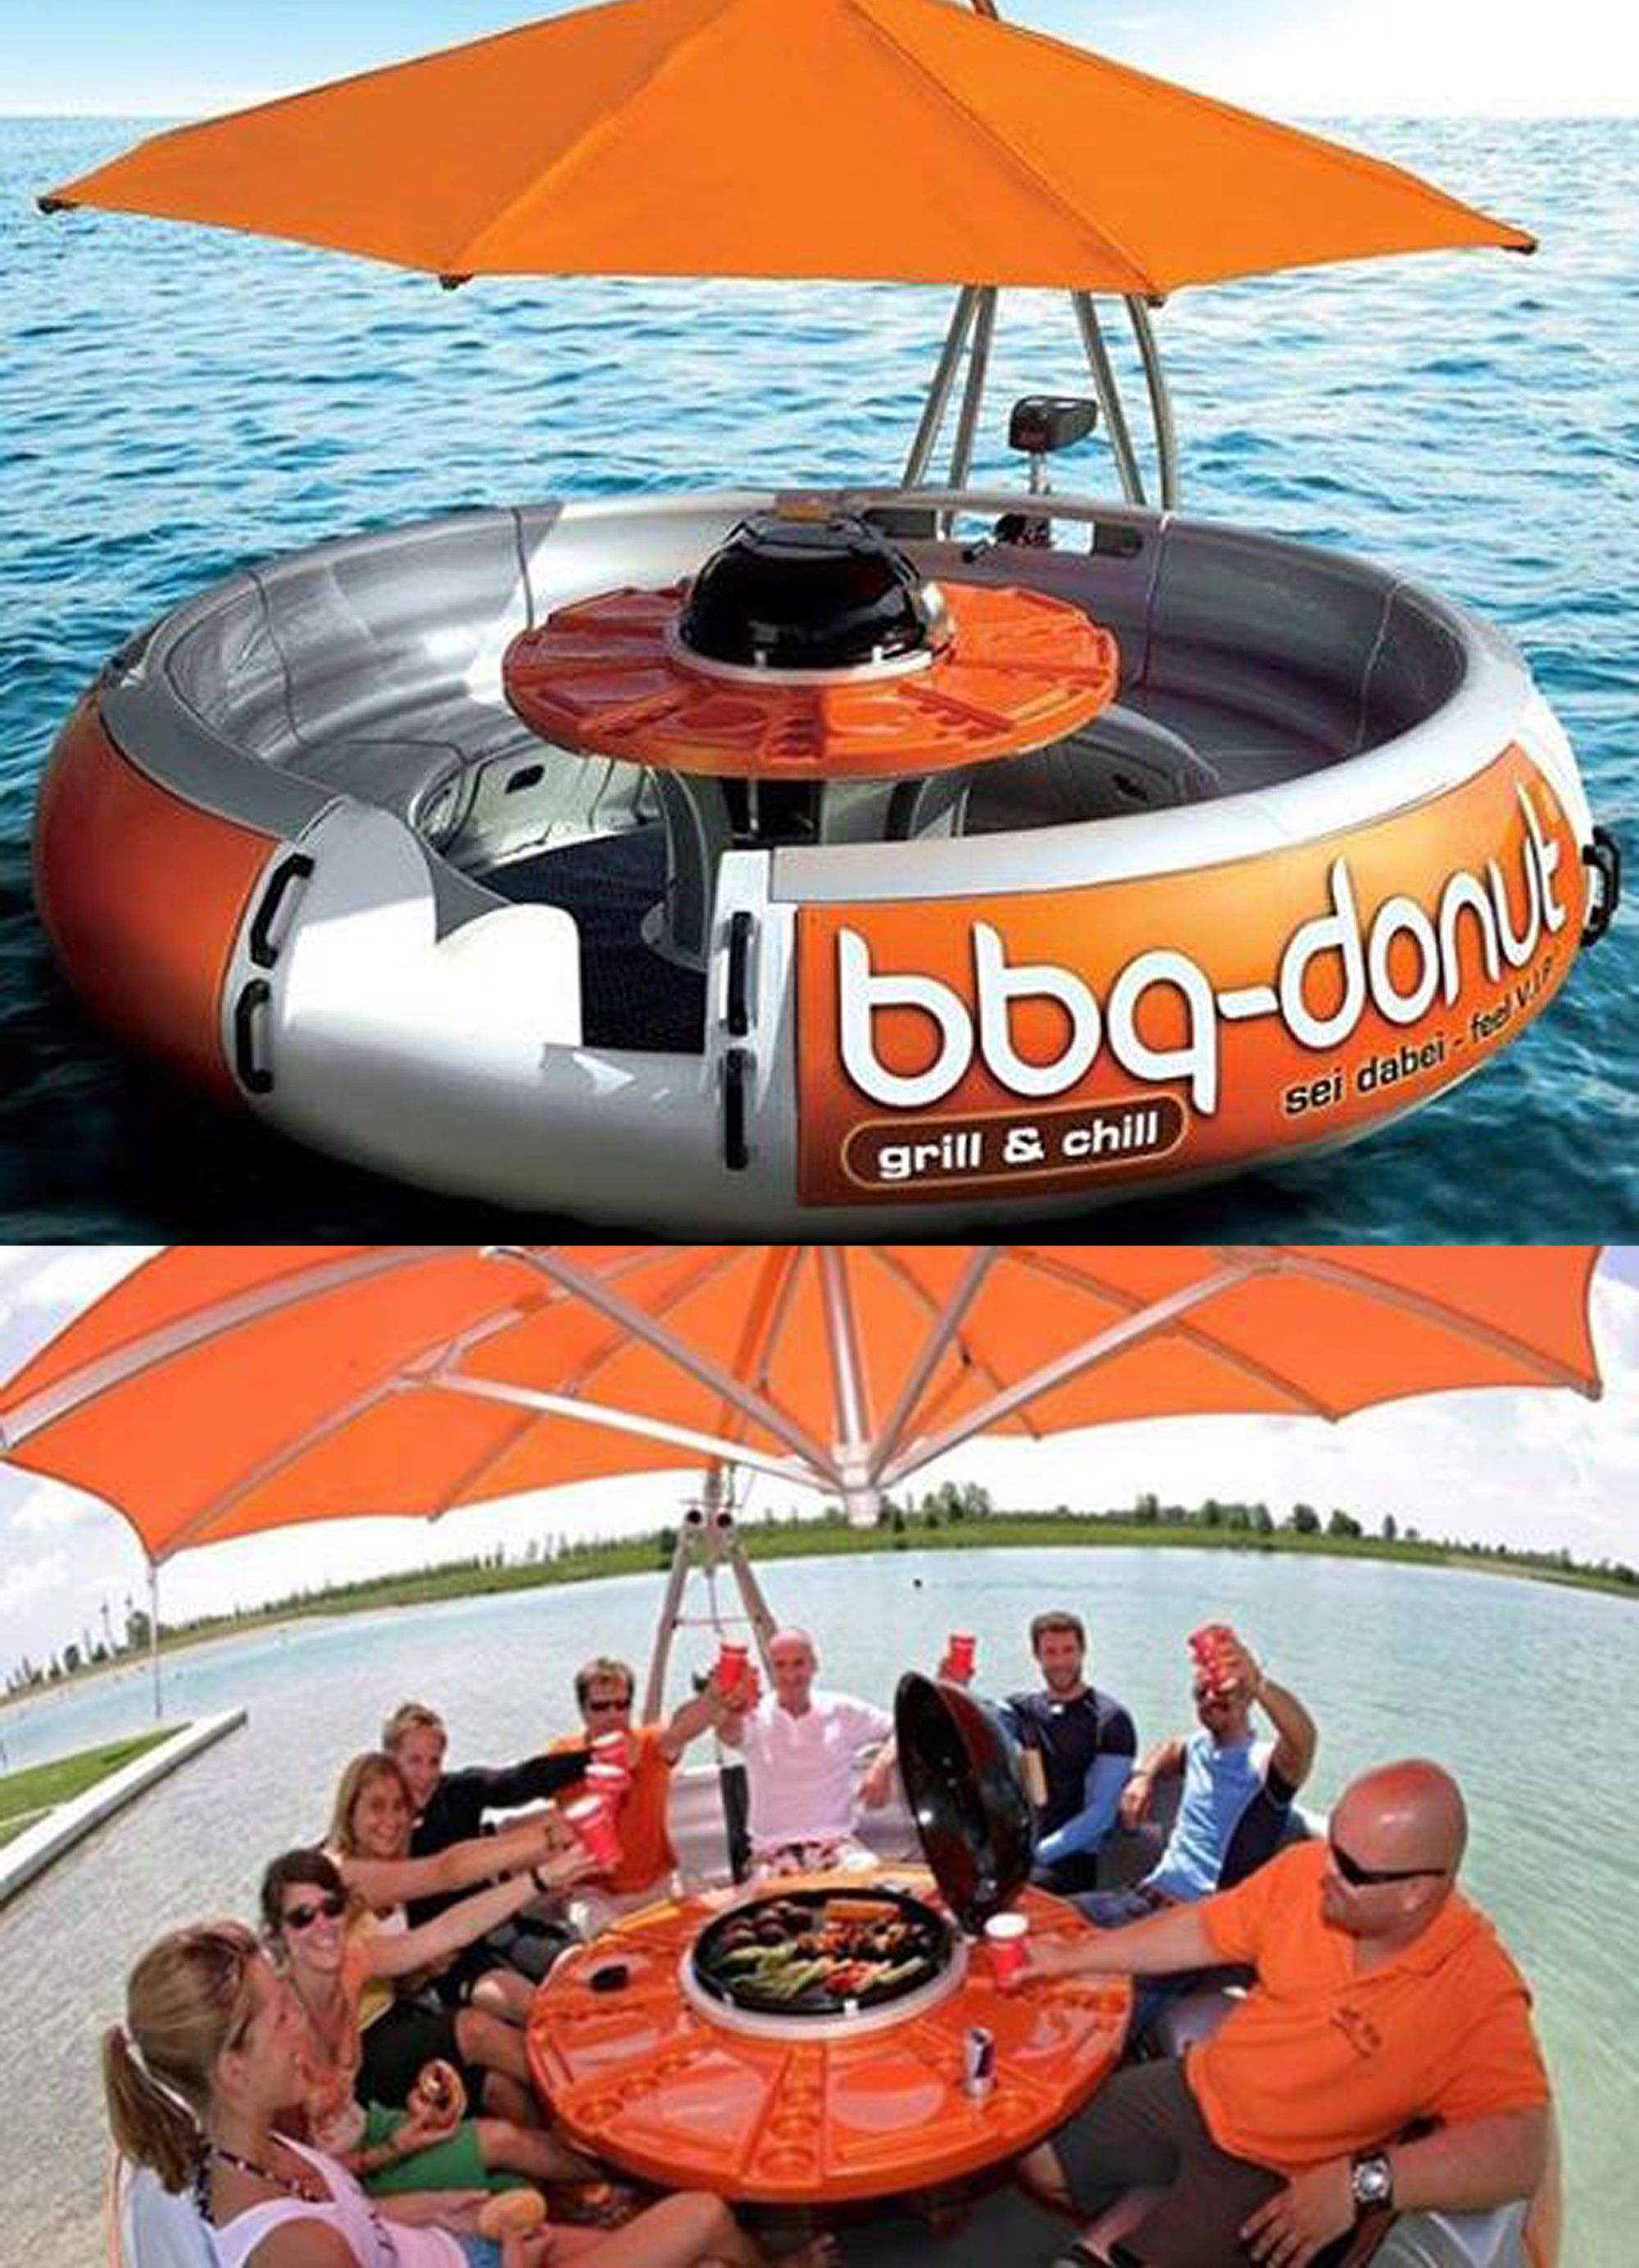 One of the coolest things ive ever seen donut pontoon